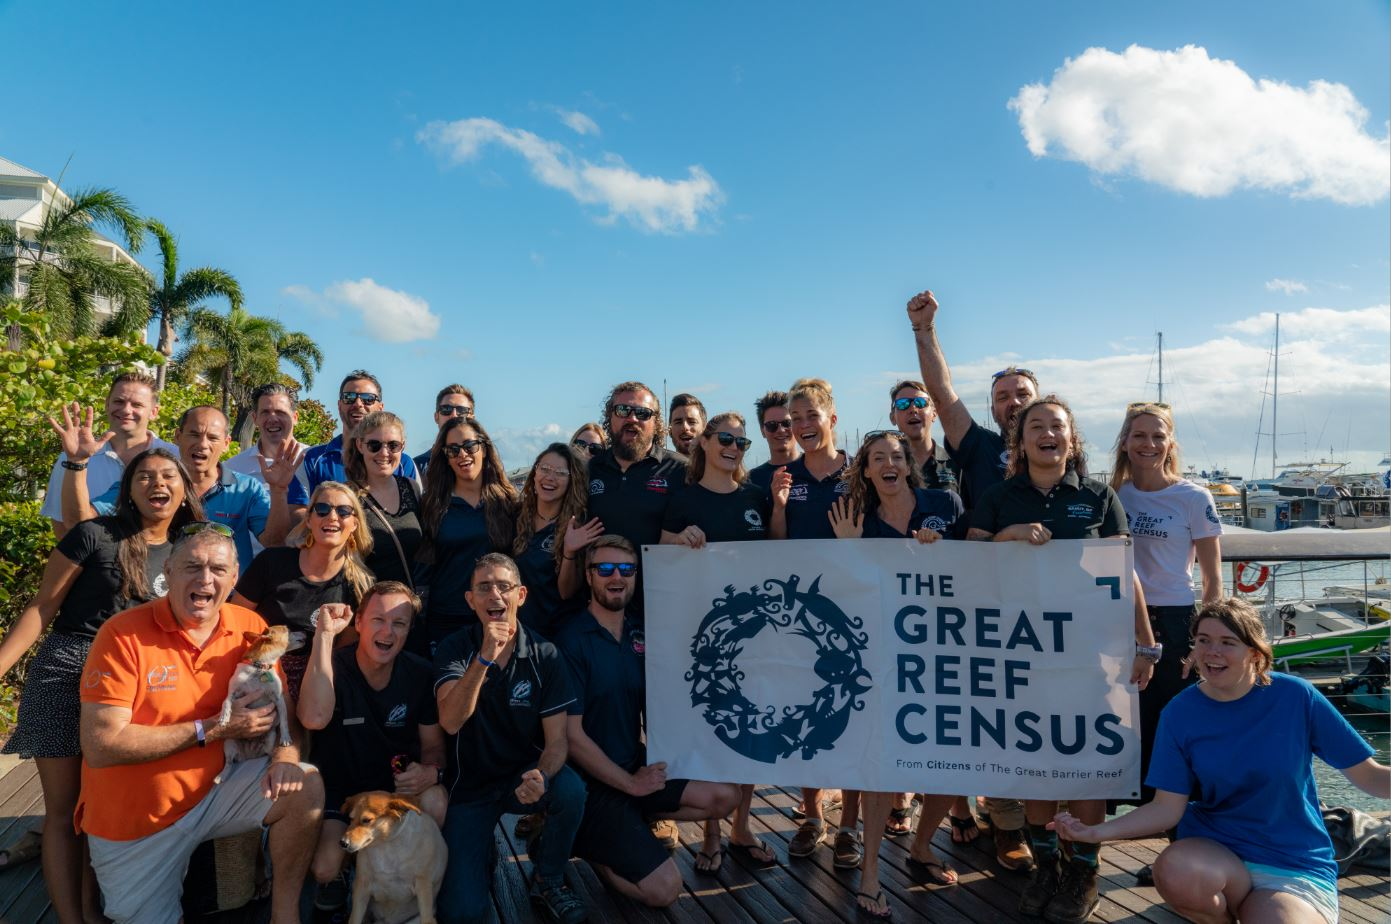 Great Reef Census Launch at the Cairns Marina. Credit Brad Fisher @ikatere_photography